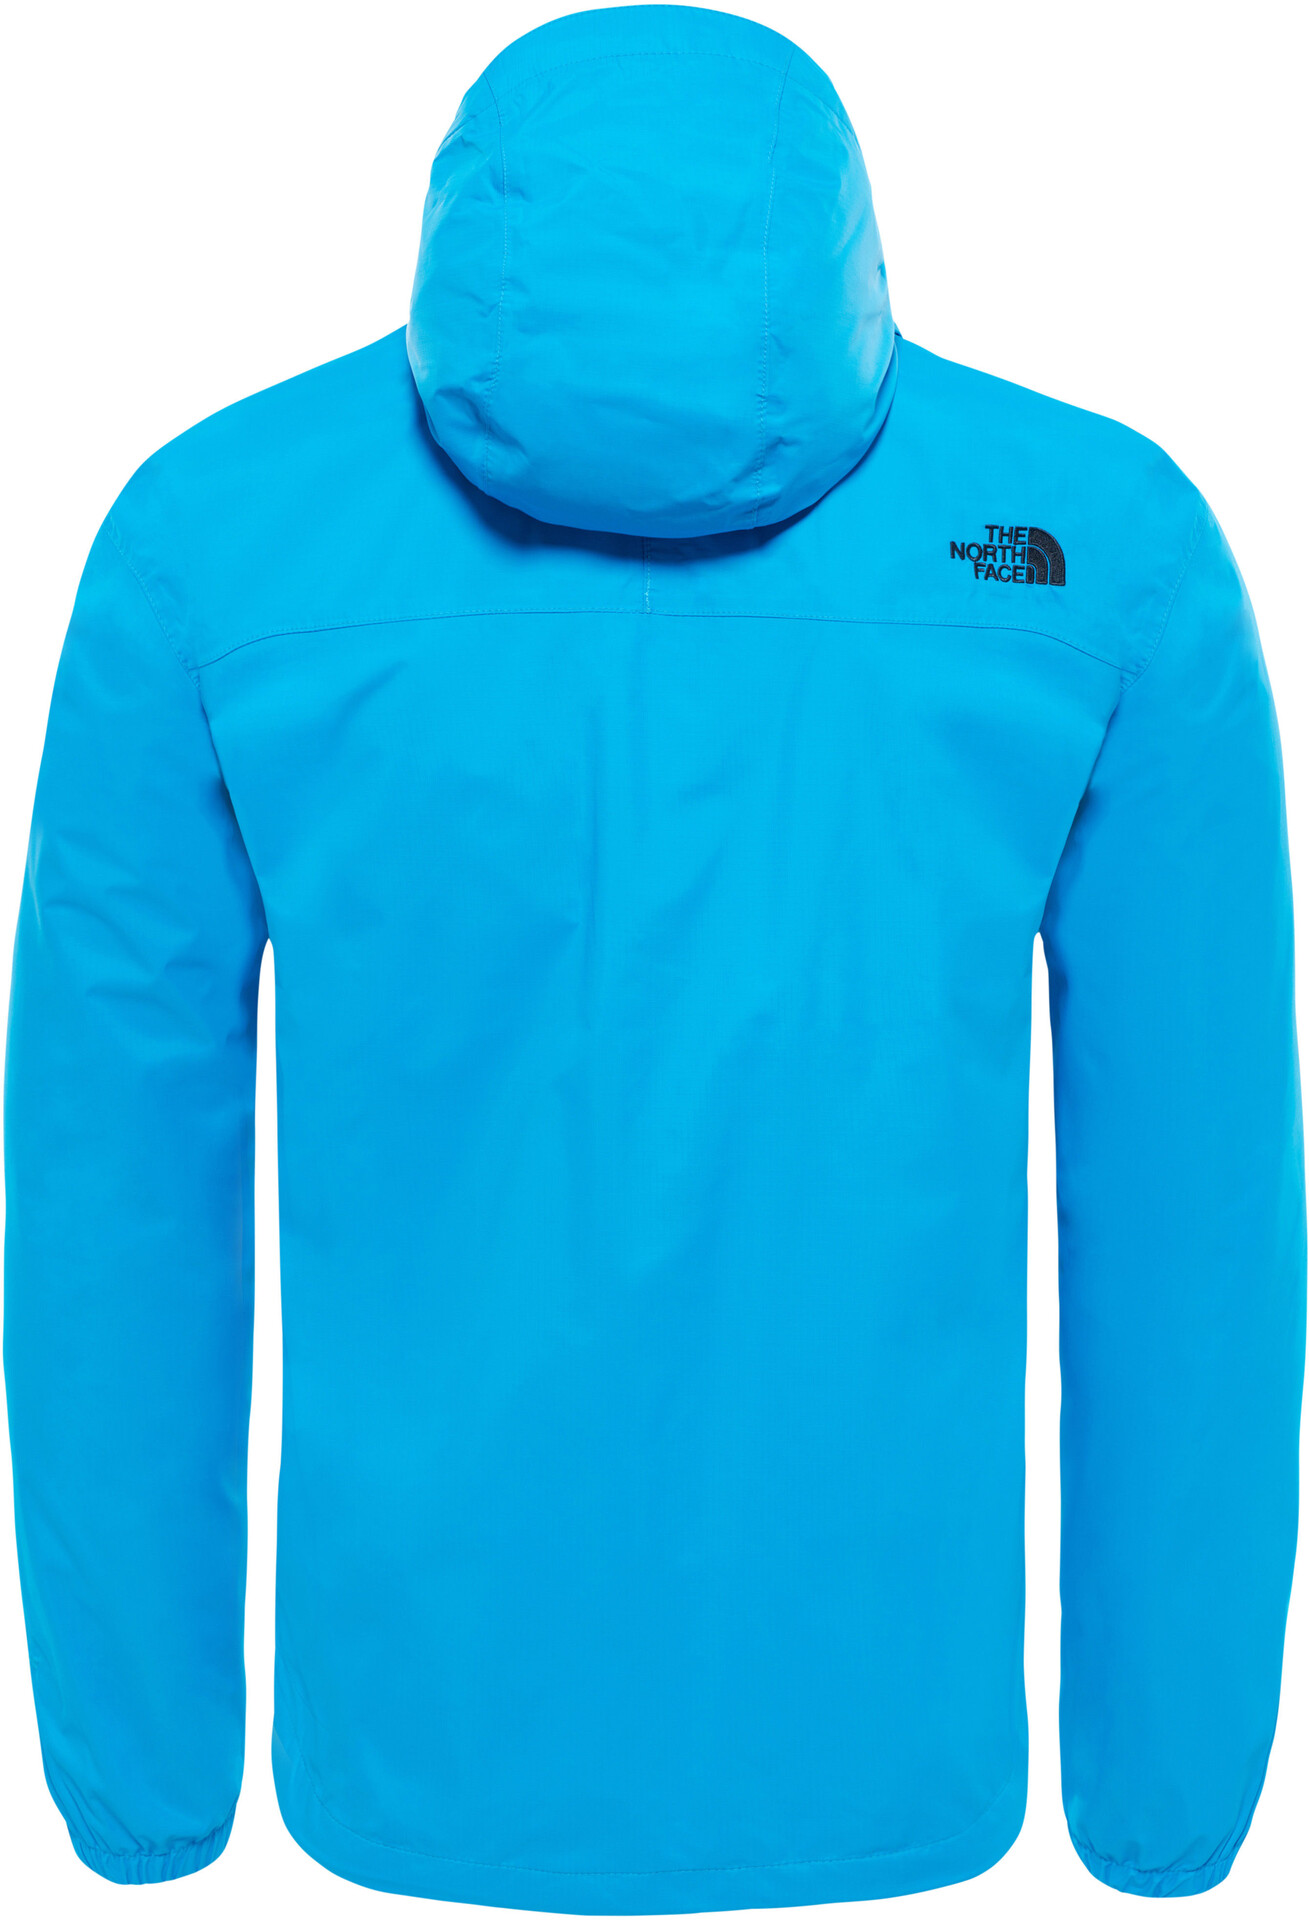 Uomo Resolve su blu Giacca North The Face Addnature qSFInO e3a22290f712